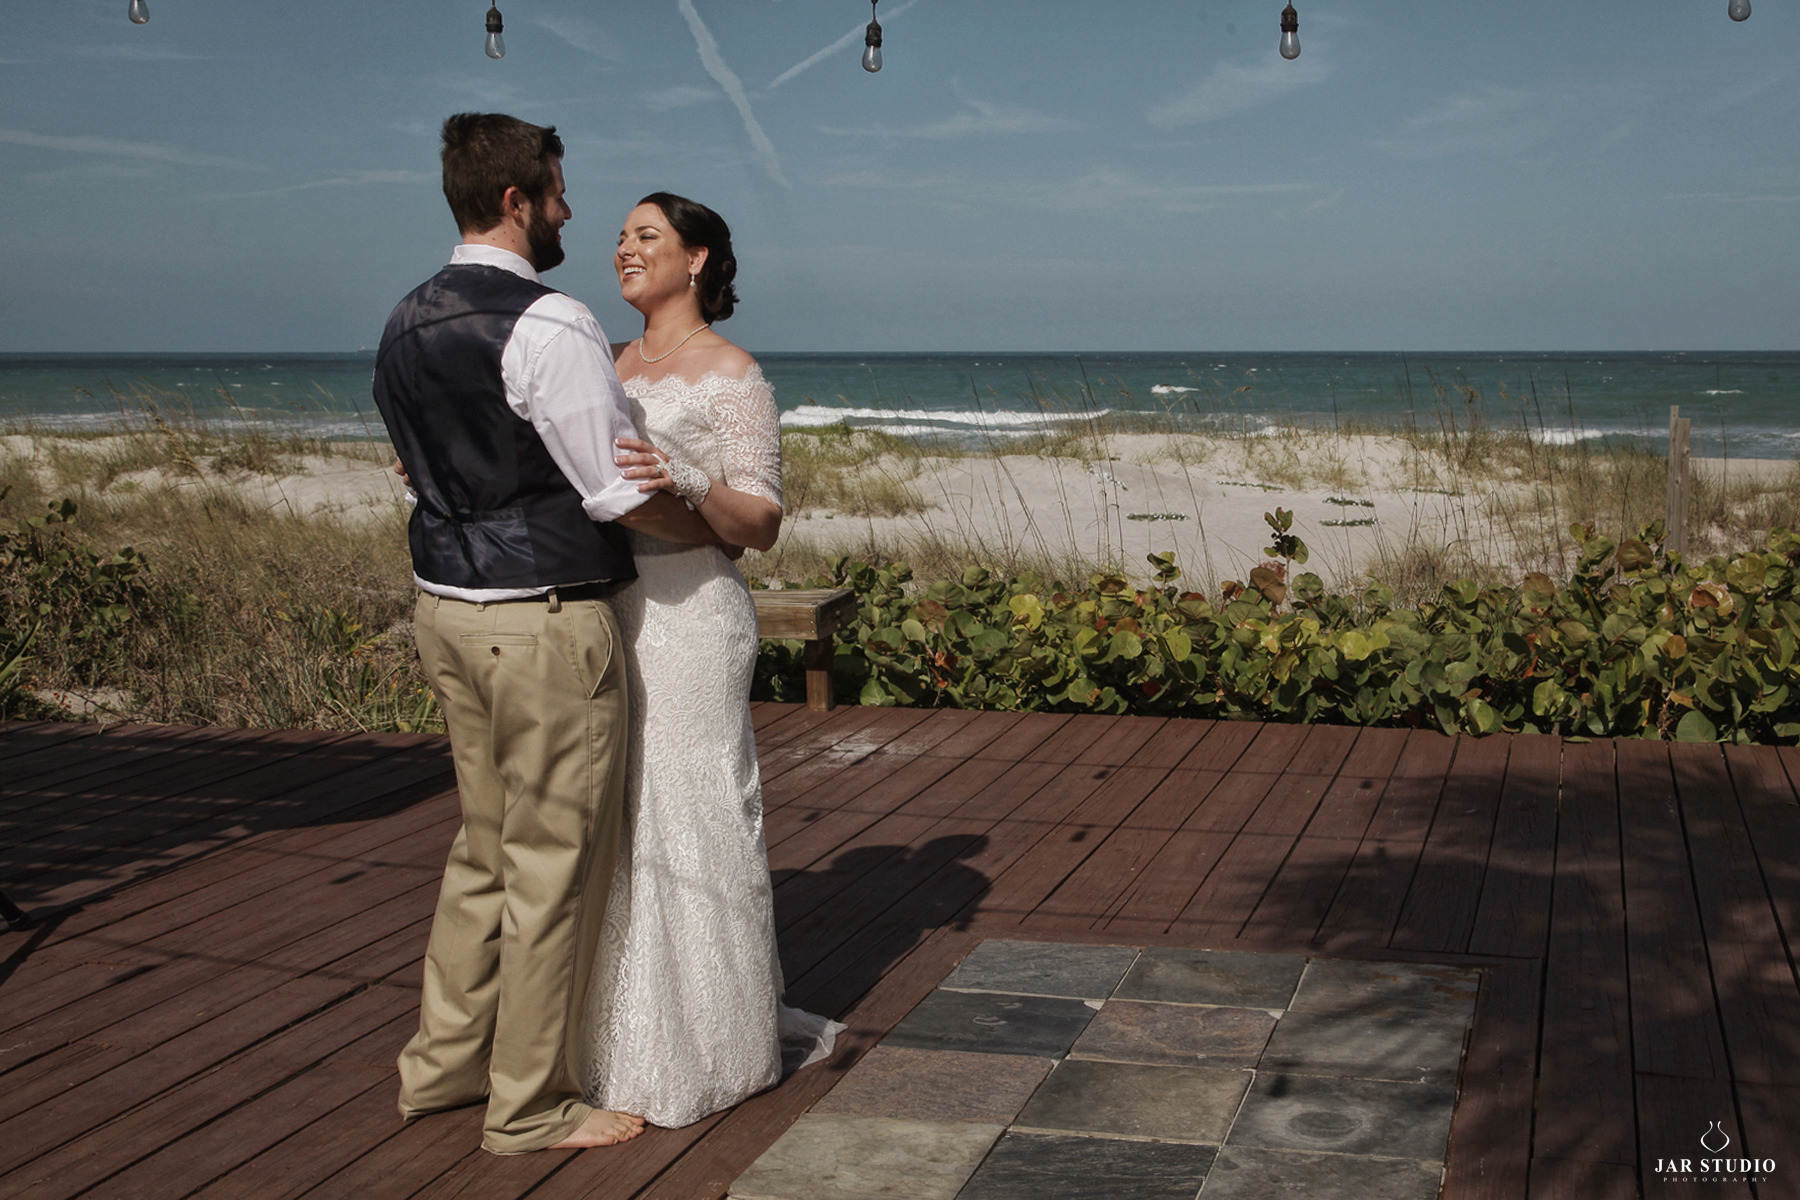 28-first-dance-beach-wedding-central-fl-photographer.JPG